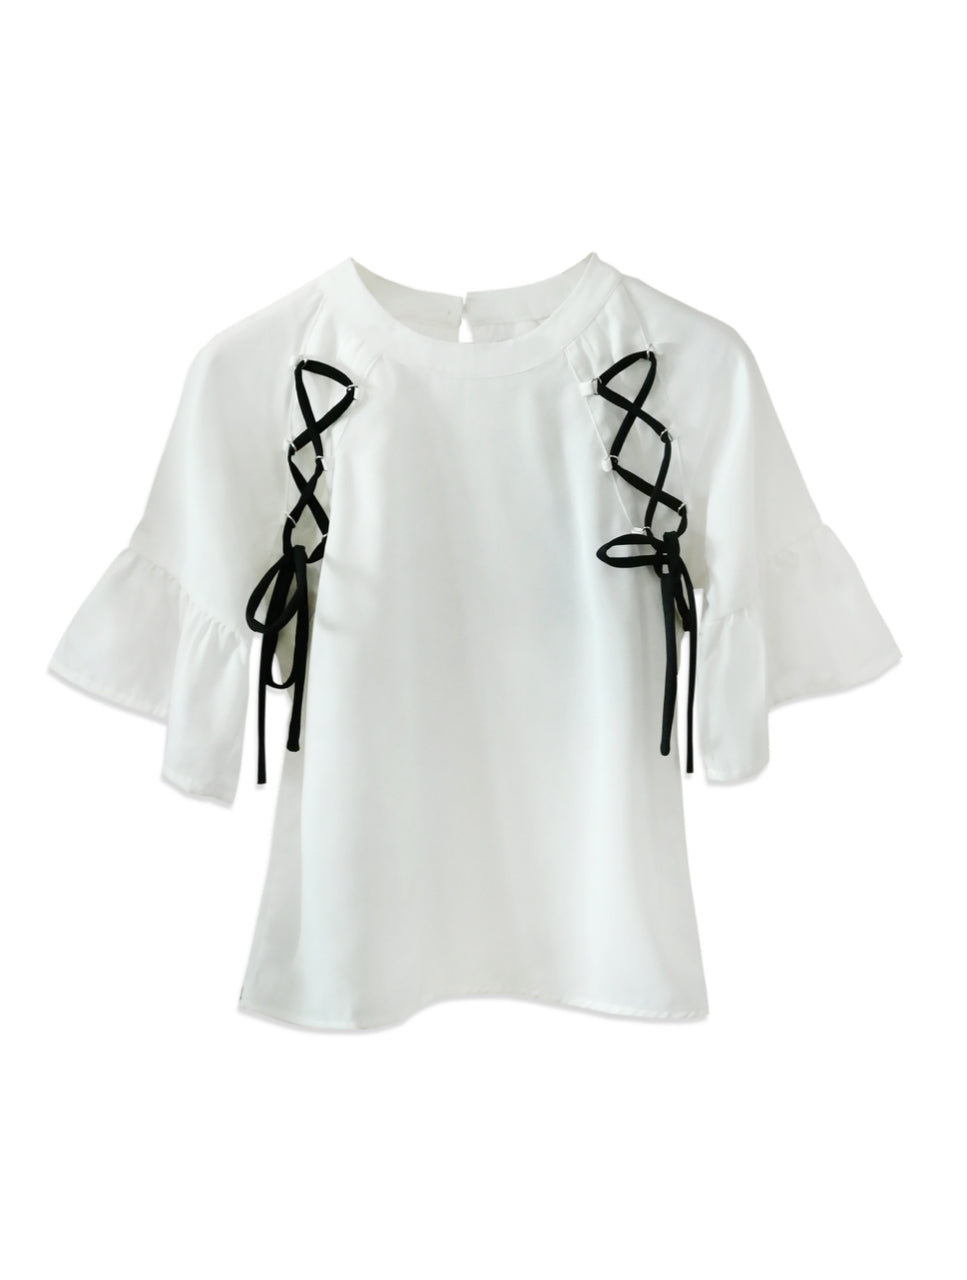 Lucca Short Sleeve Top